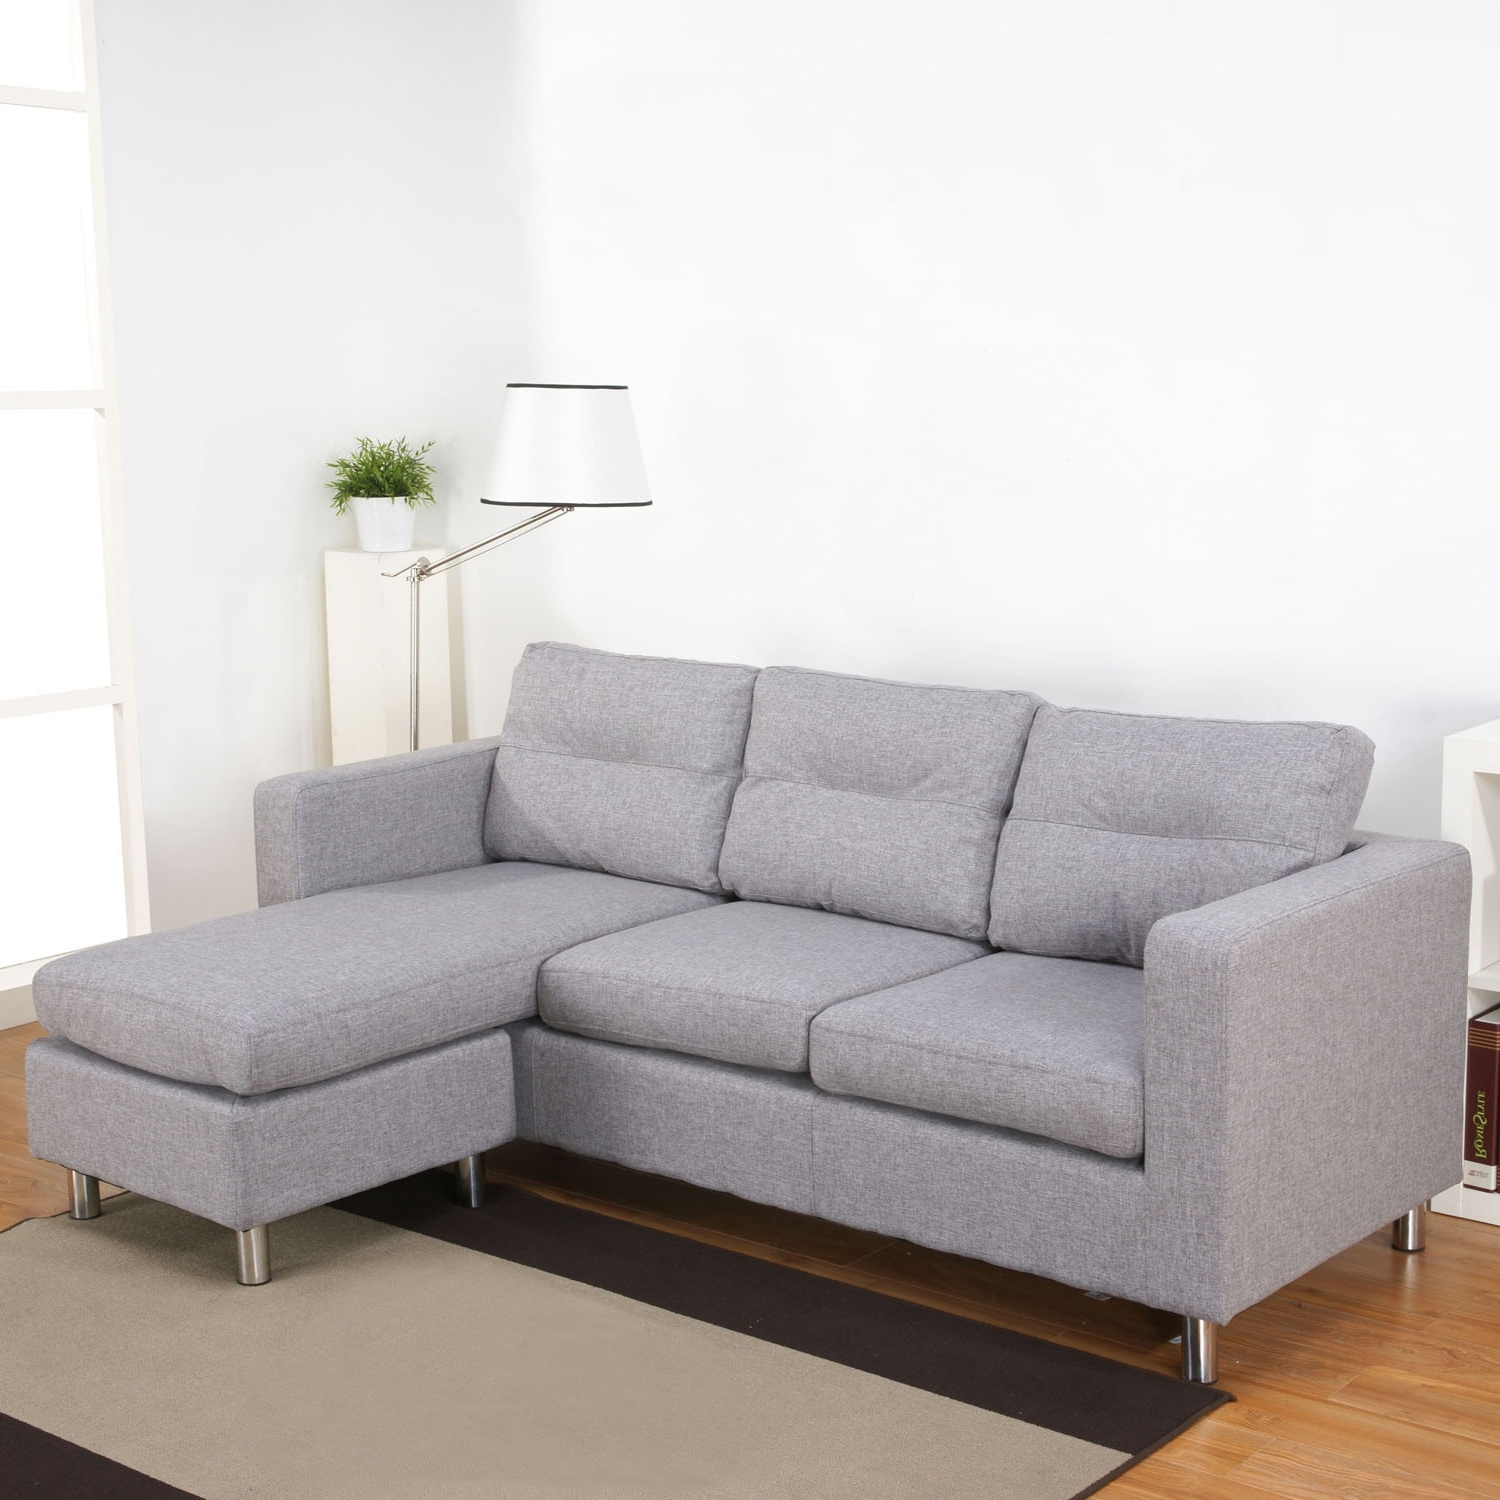 Gray Sectional Sofas With Chaise (View 5 of 15)